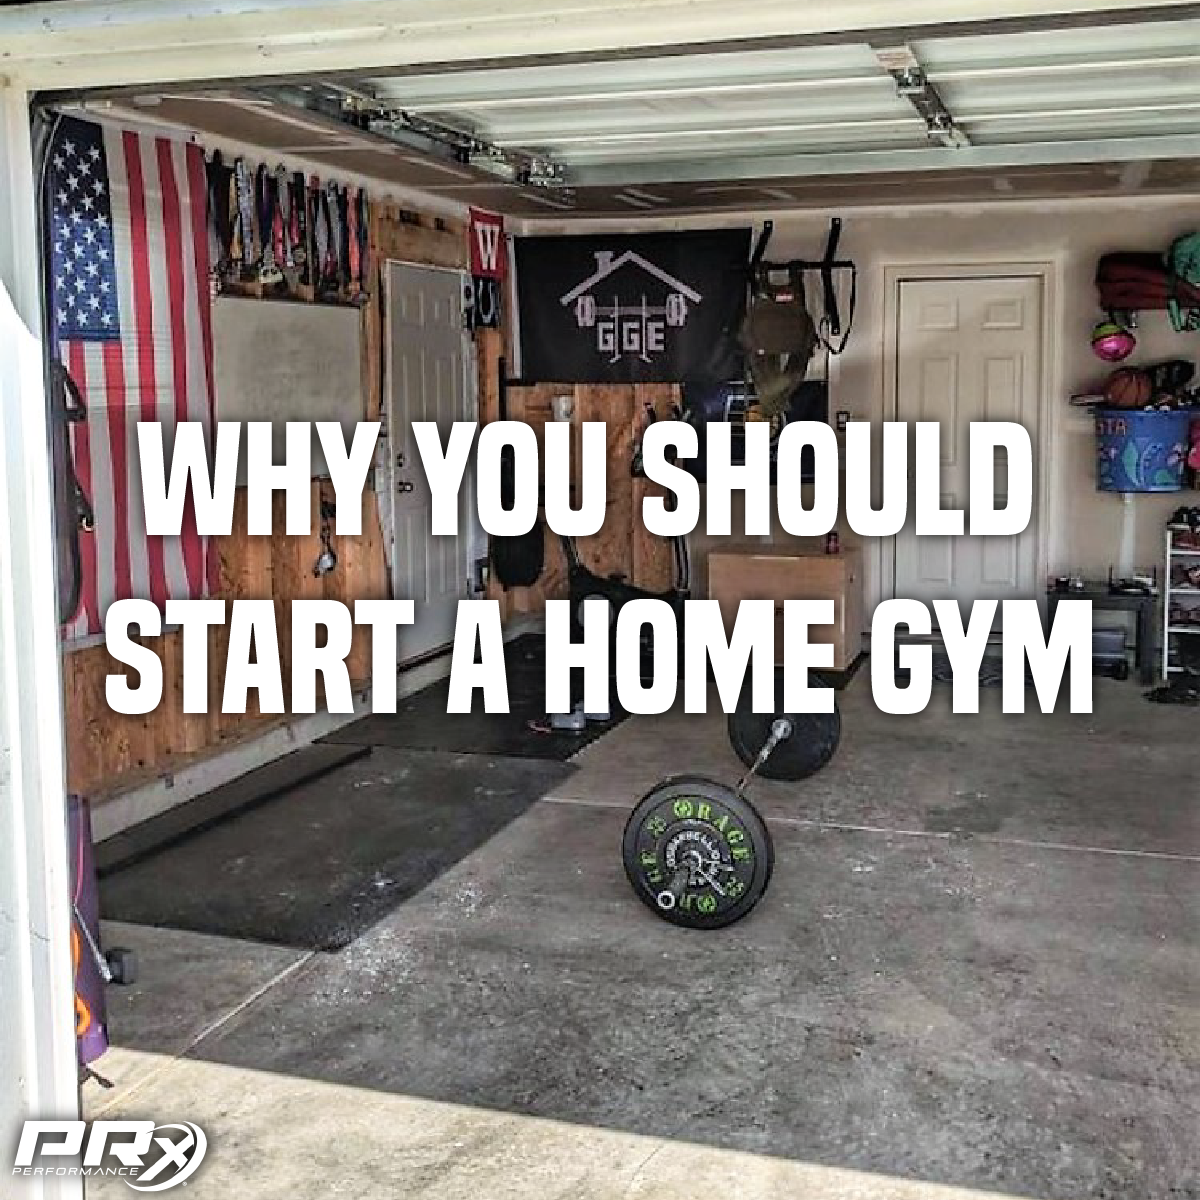 Why you should start a home gym